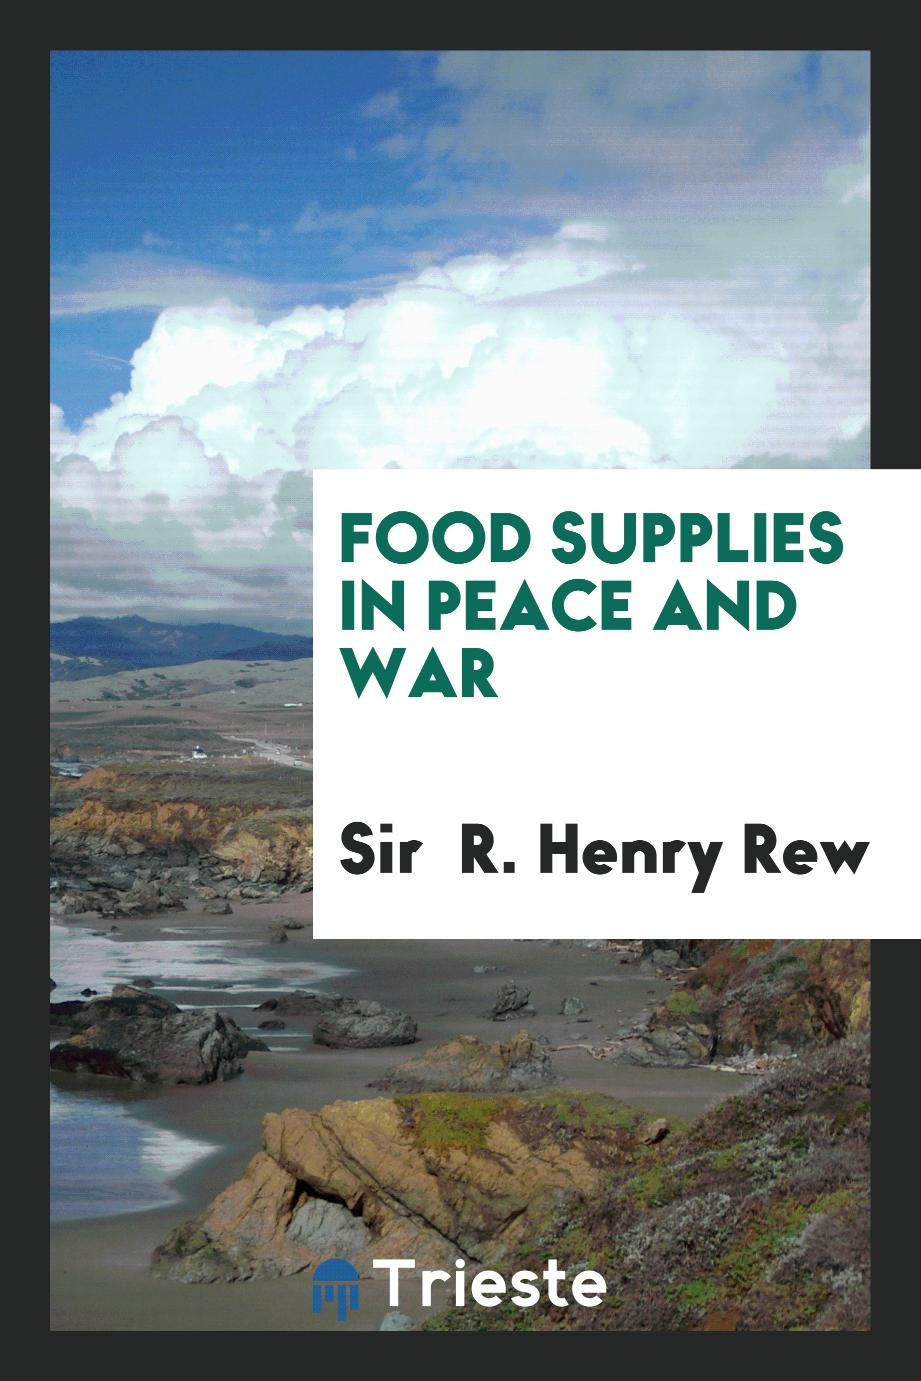 Food supplies in peace and war